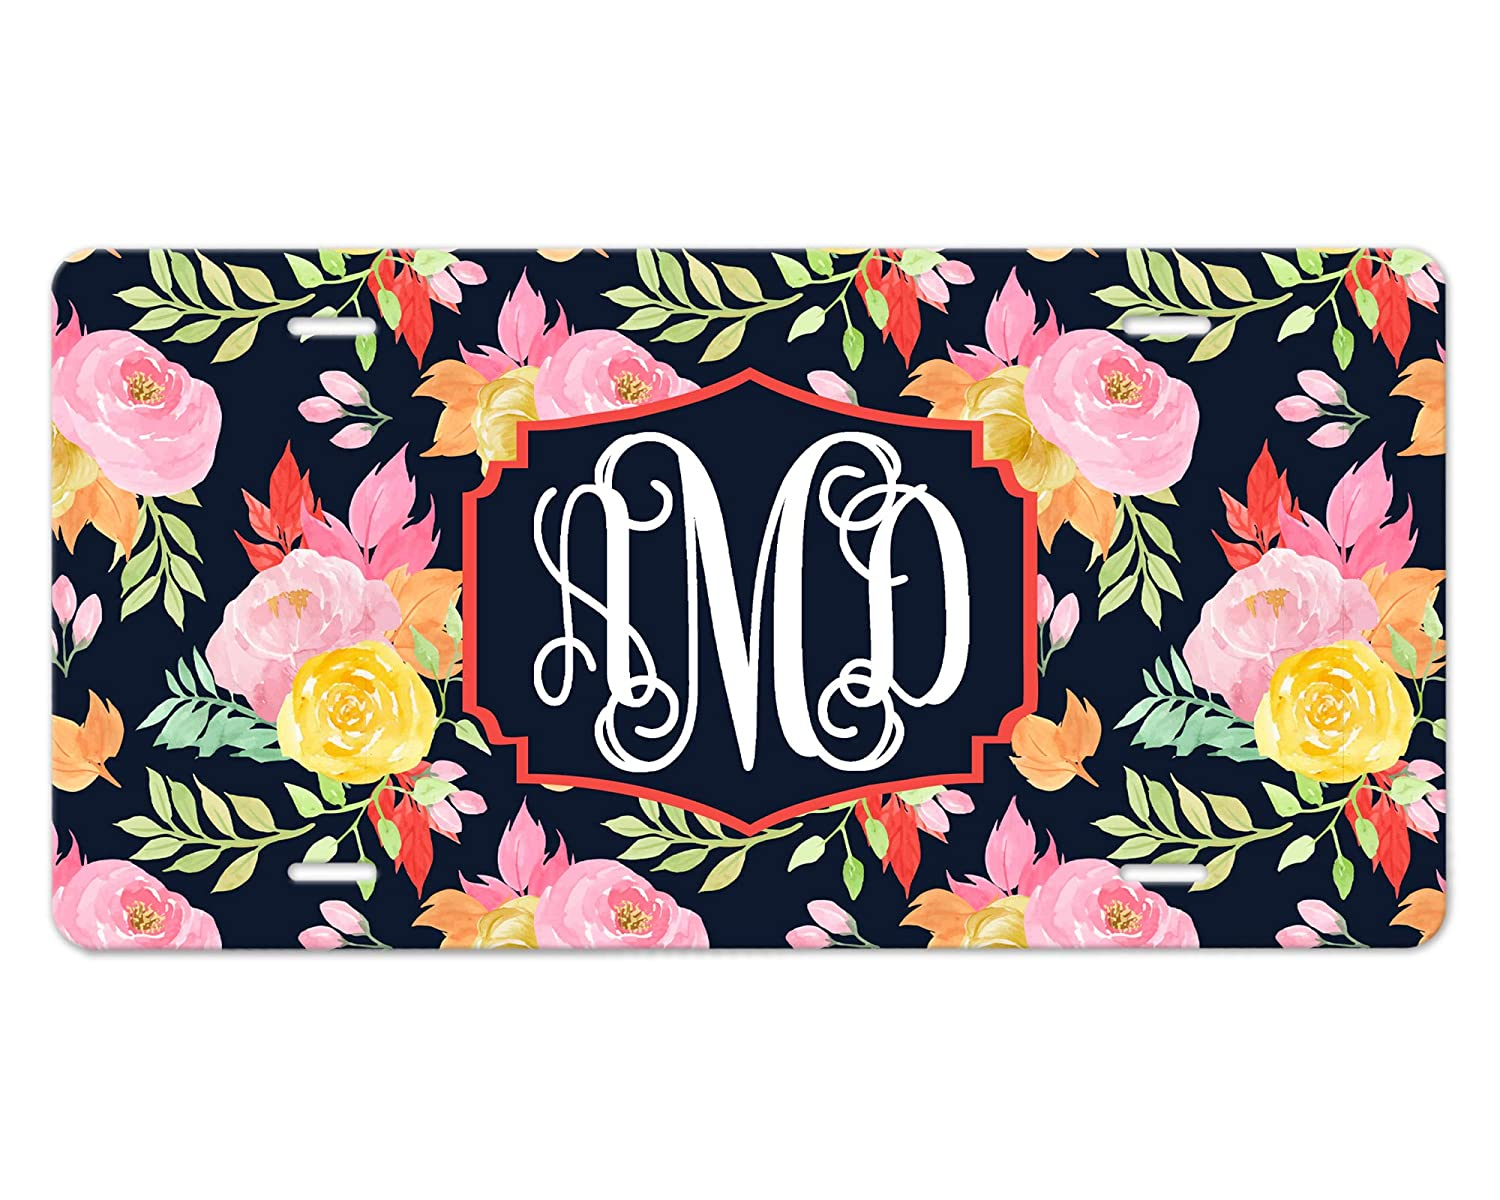 Add Your Own Monogram Surprise price License Plate Desig with Flowers Super-cheap Navy Blue